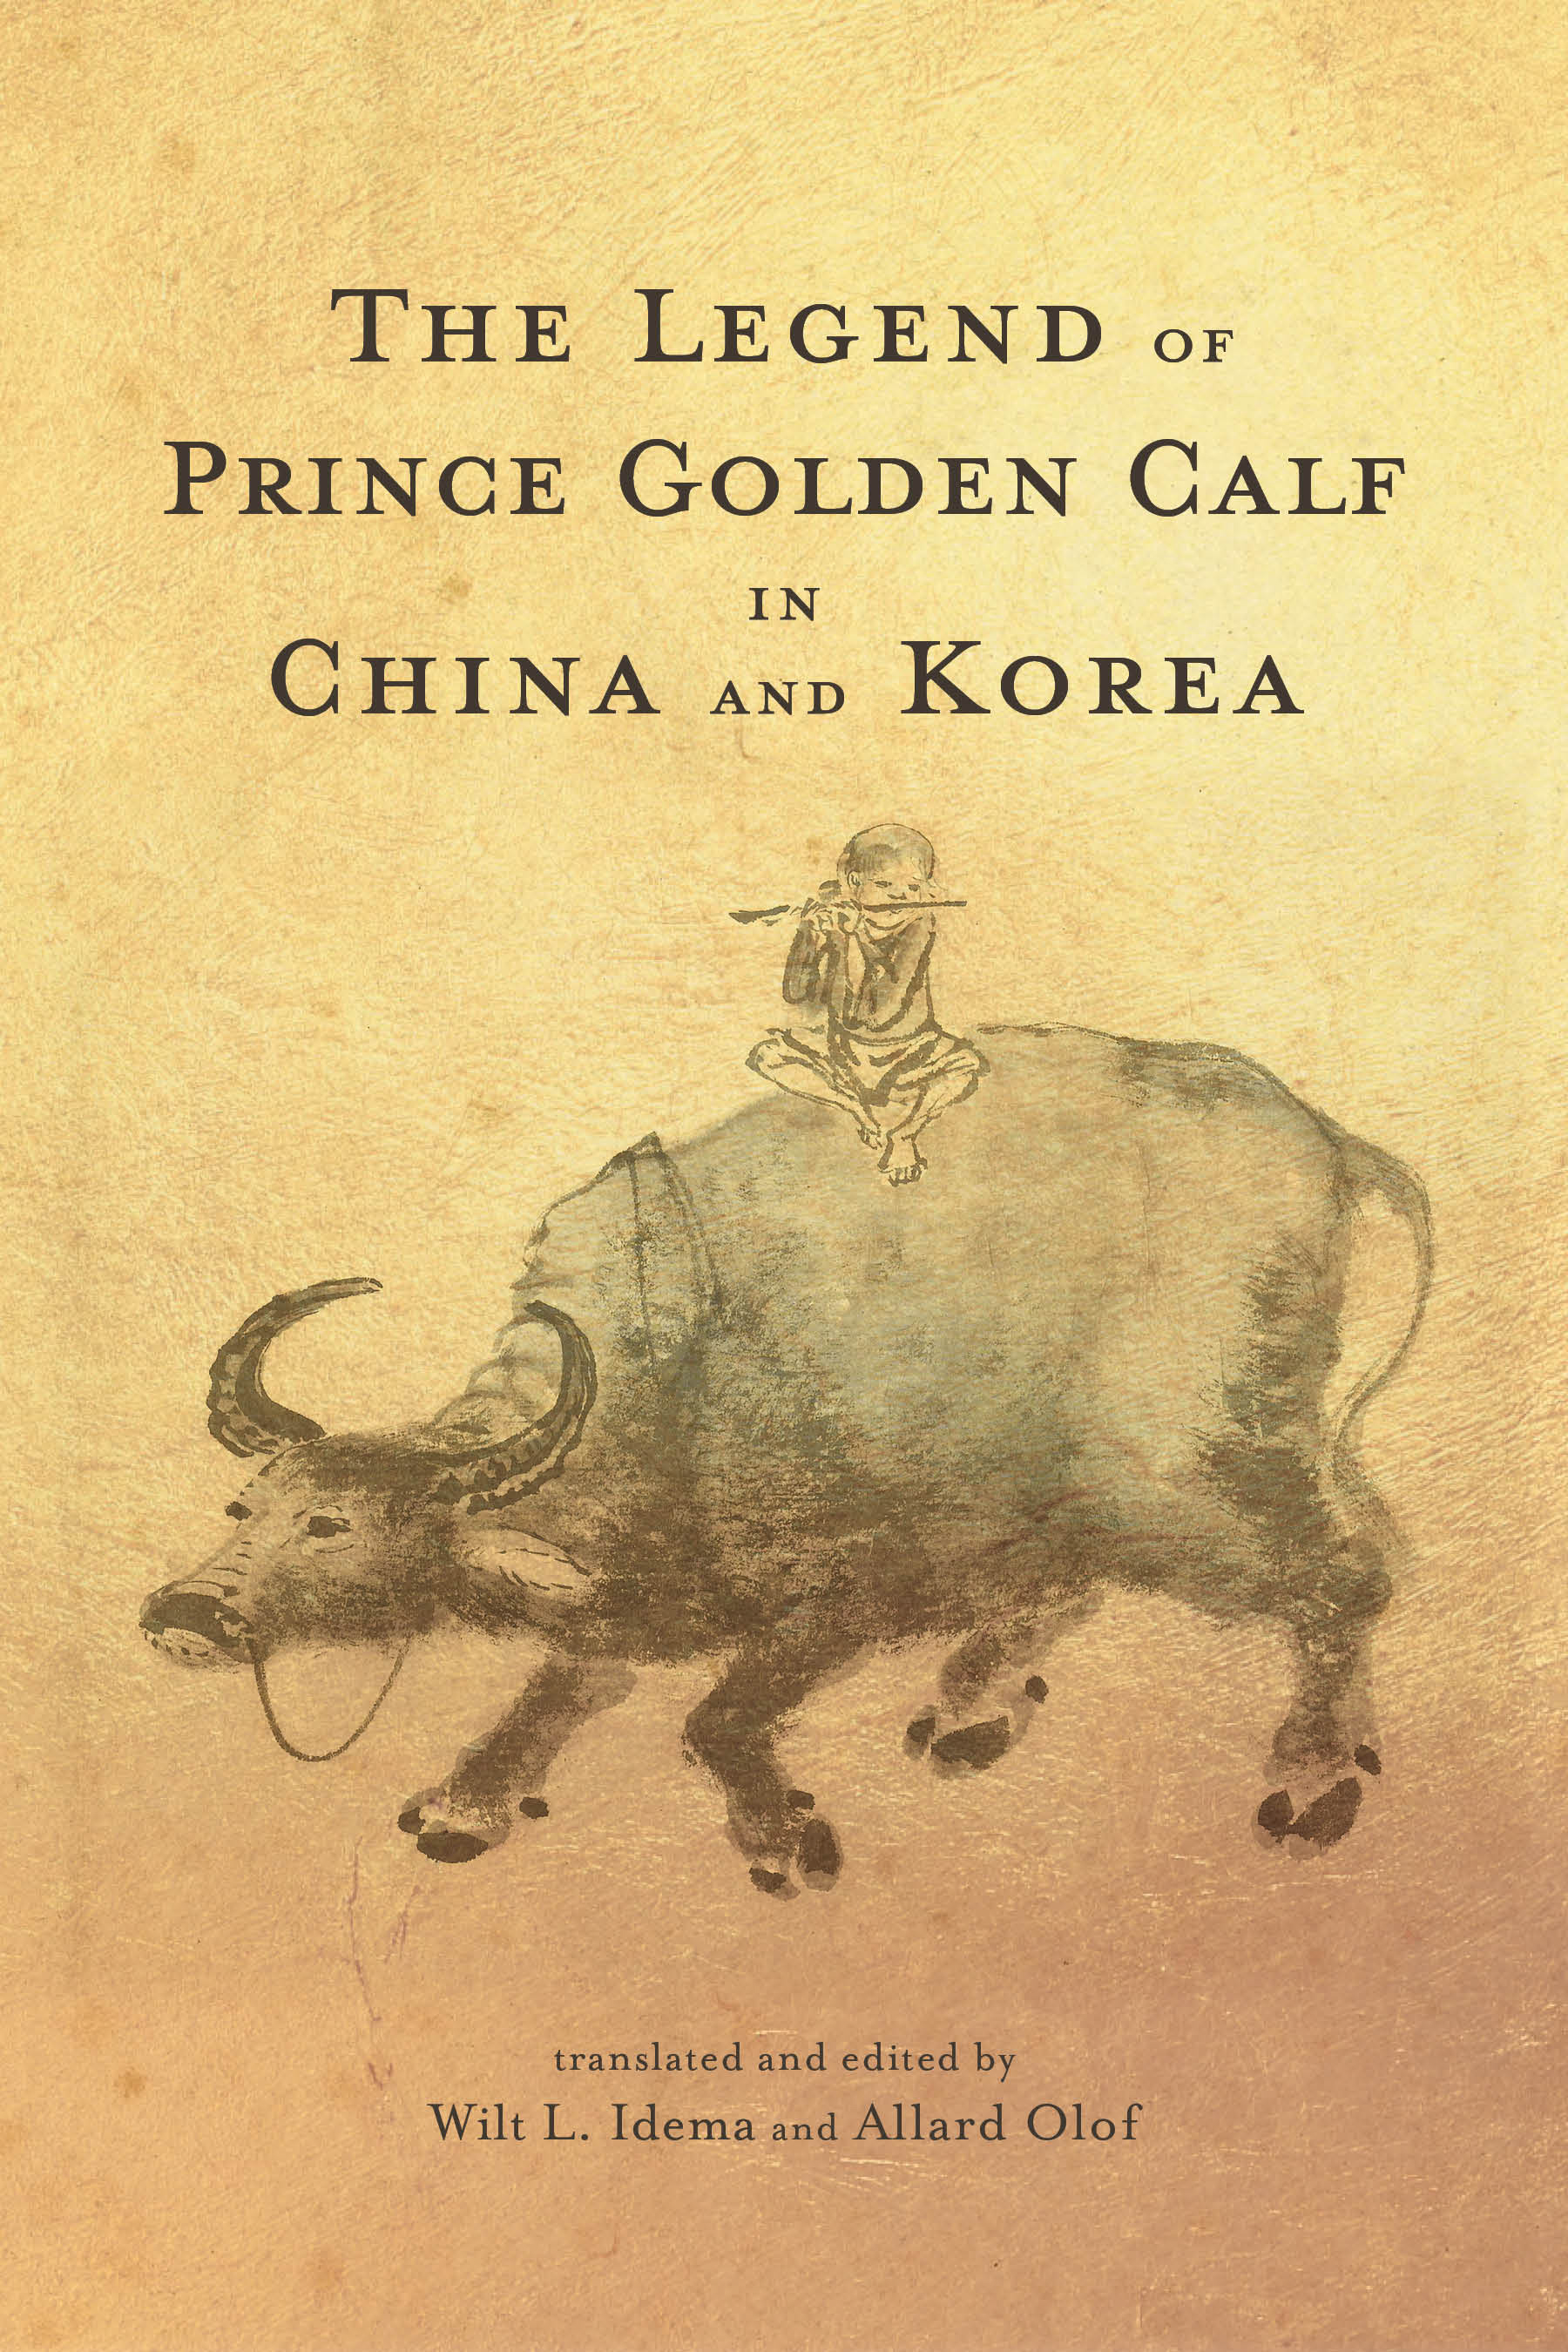 The Legend of Prince Golden Calf in China and Korea